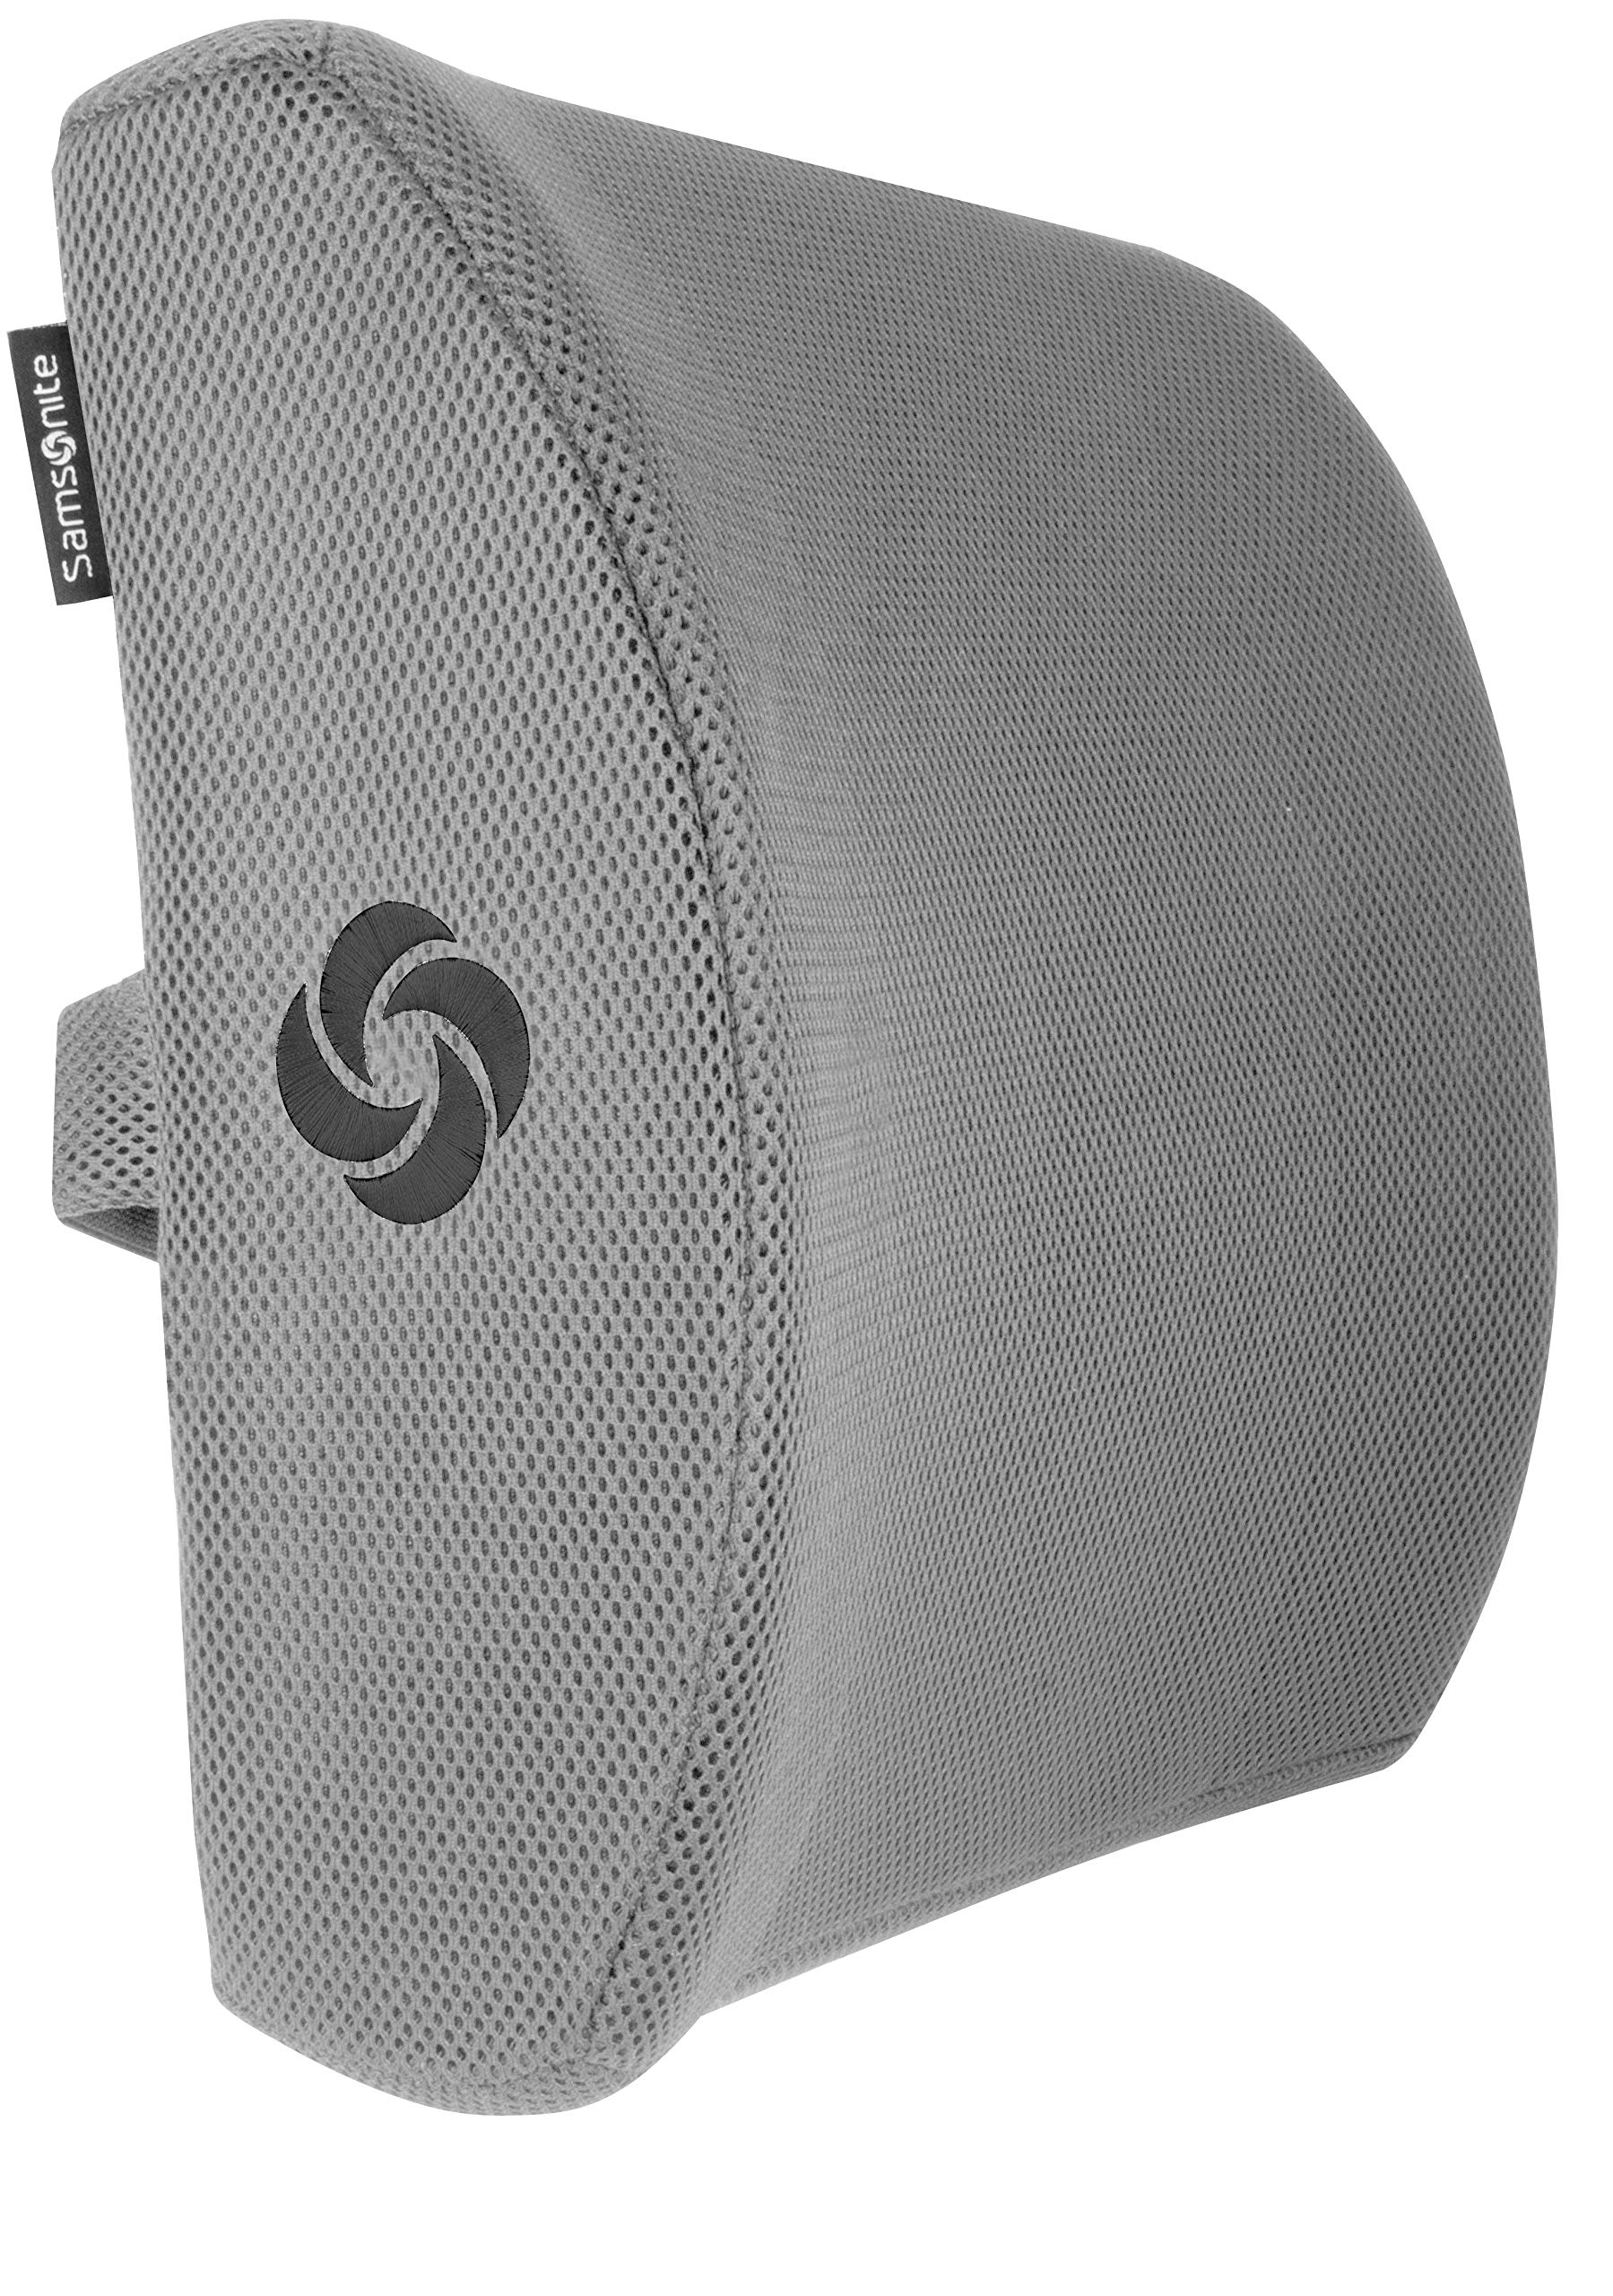 Samsonite SA5244 - Ergonomic Lumbar Support Pillow - Helps Relieve Lower Back Pain - 100% Pure Memory Foam - Improves Posture - Fits Most Seats - Breathable Mesh - Washable Cover - Adjustable Strap by Samsonite (Image #2)